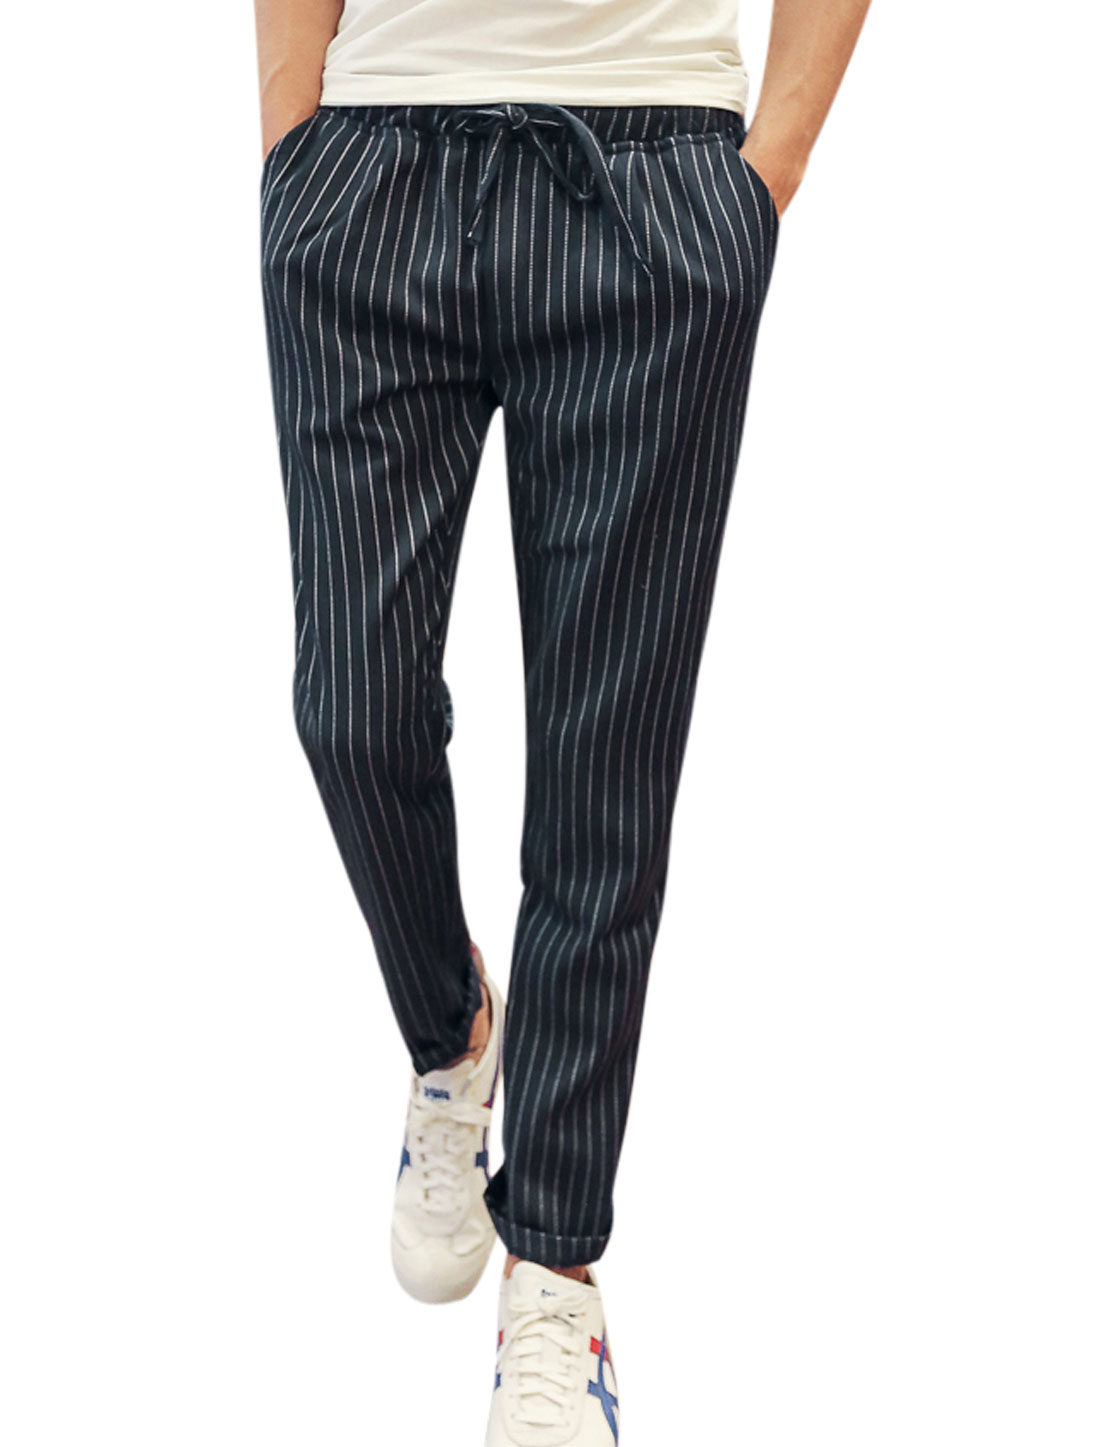 Men Elastic Waist Stripes Pockets Casual Cropped Pants Navy Blue W30